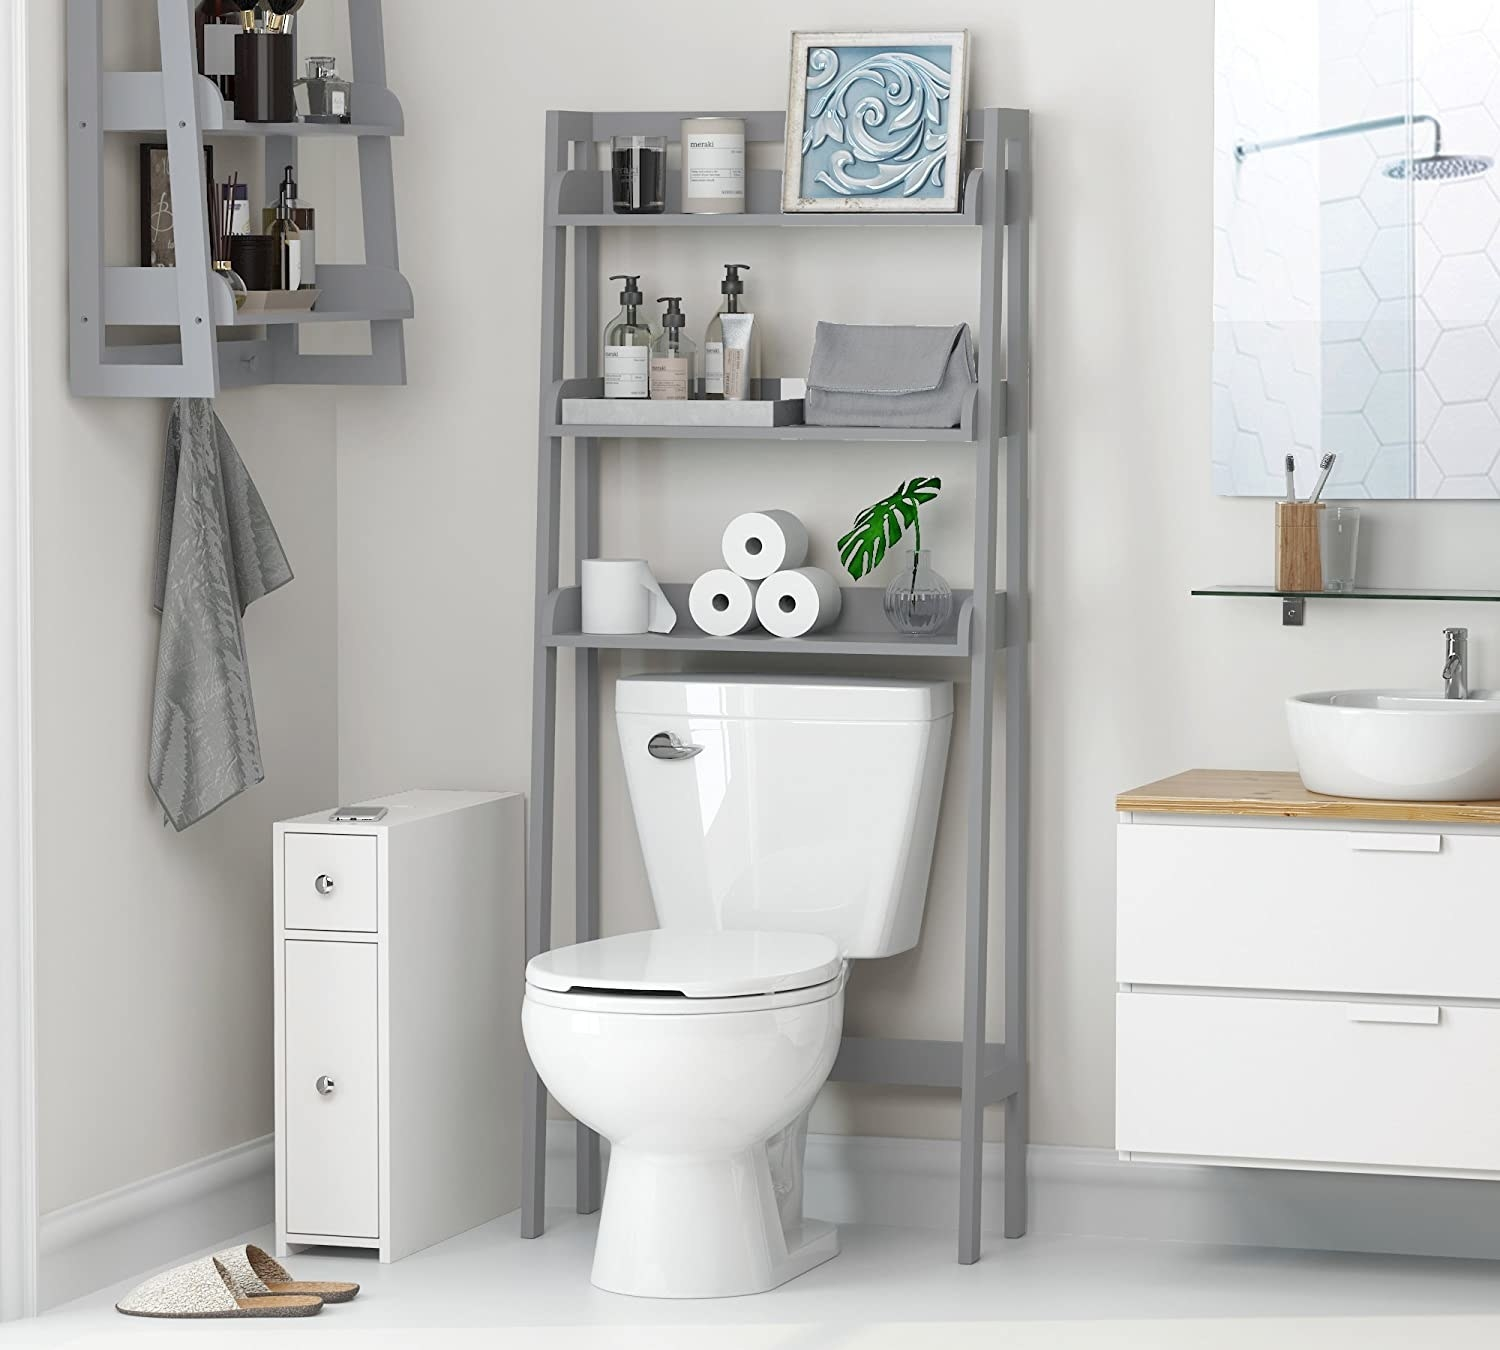 The shelf perched over a toilet and neatly stacked with bathroom supplies